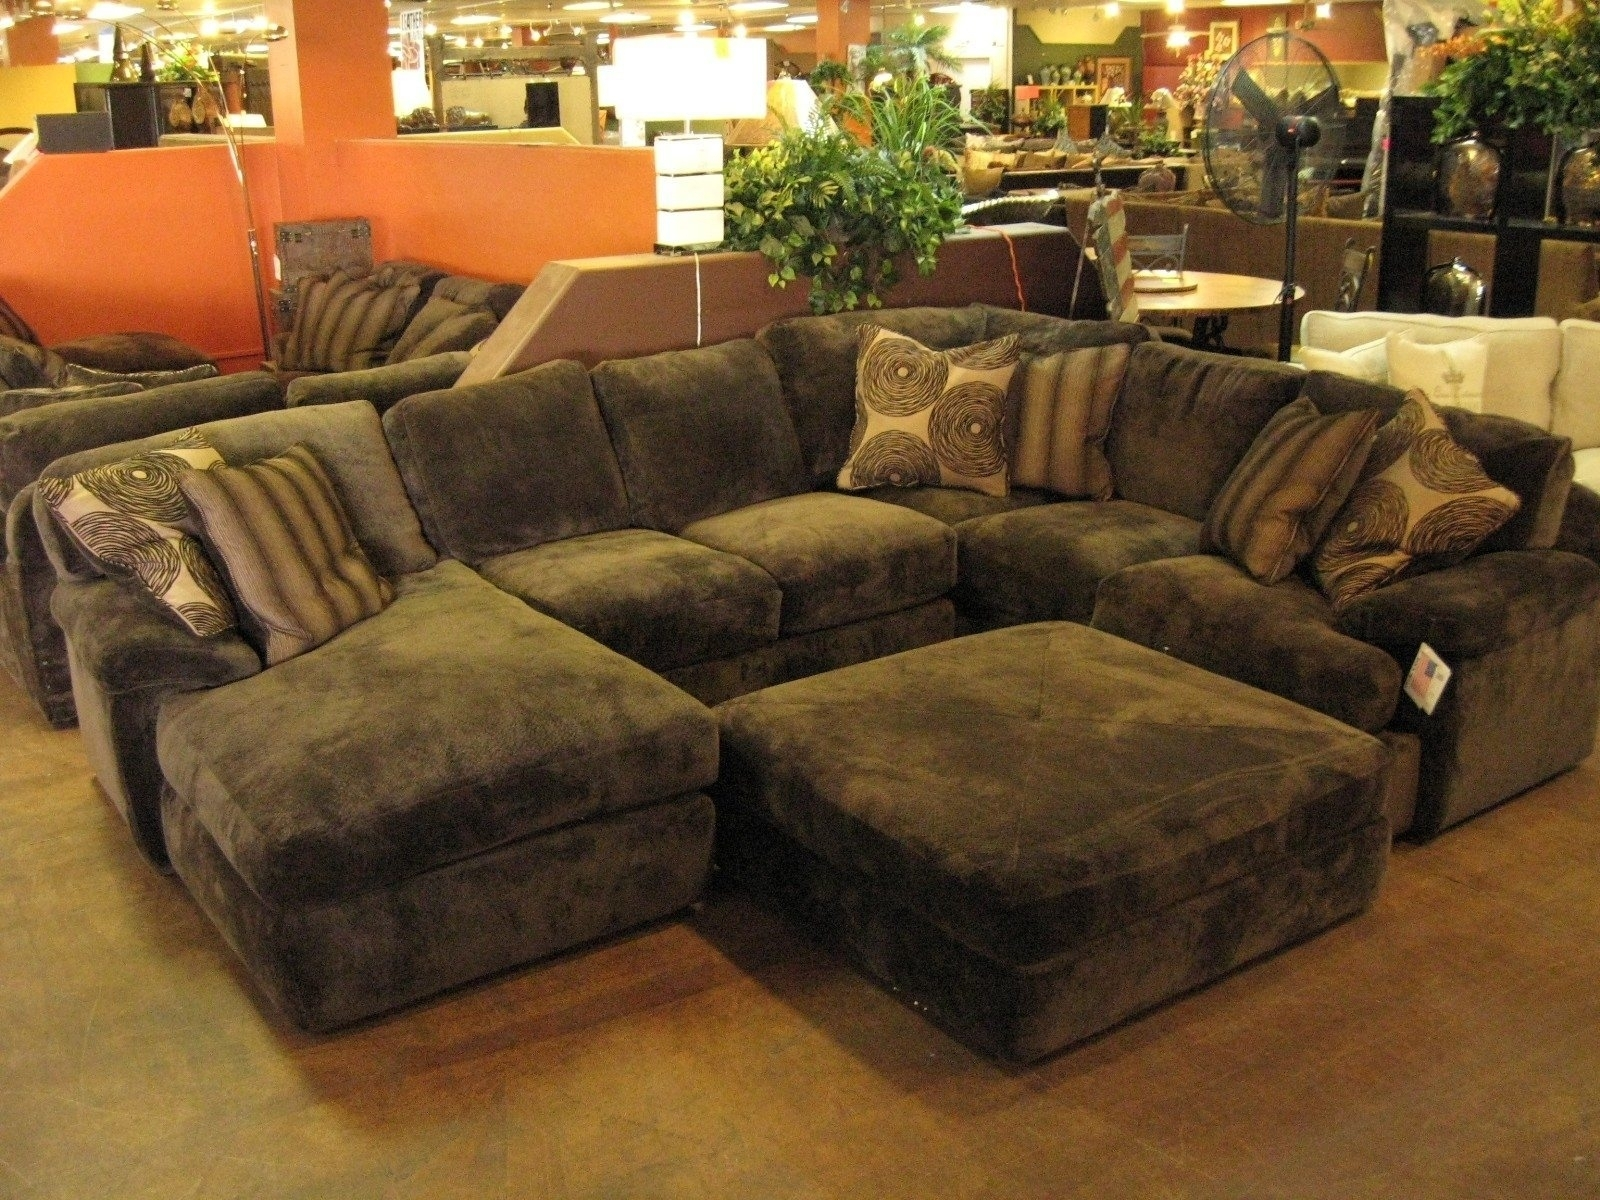 Large Sectional Sofa With Ottoman • Sectional Sofa Regarding Sofas With Ottoman (View 4 of 10)